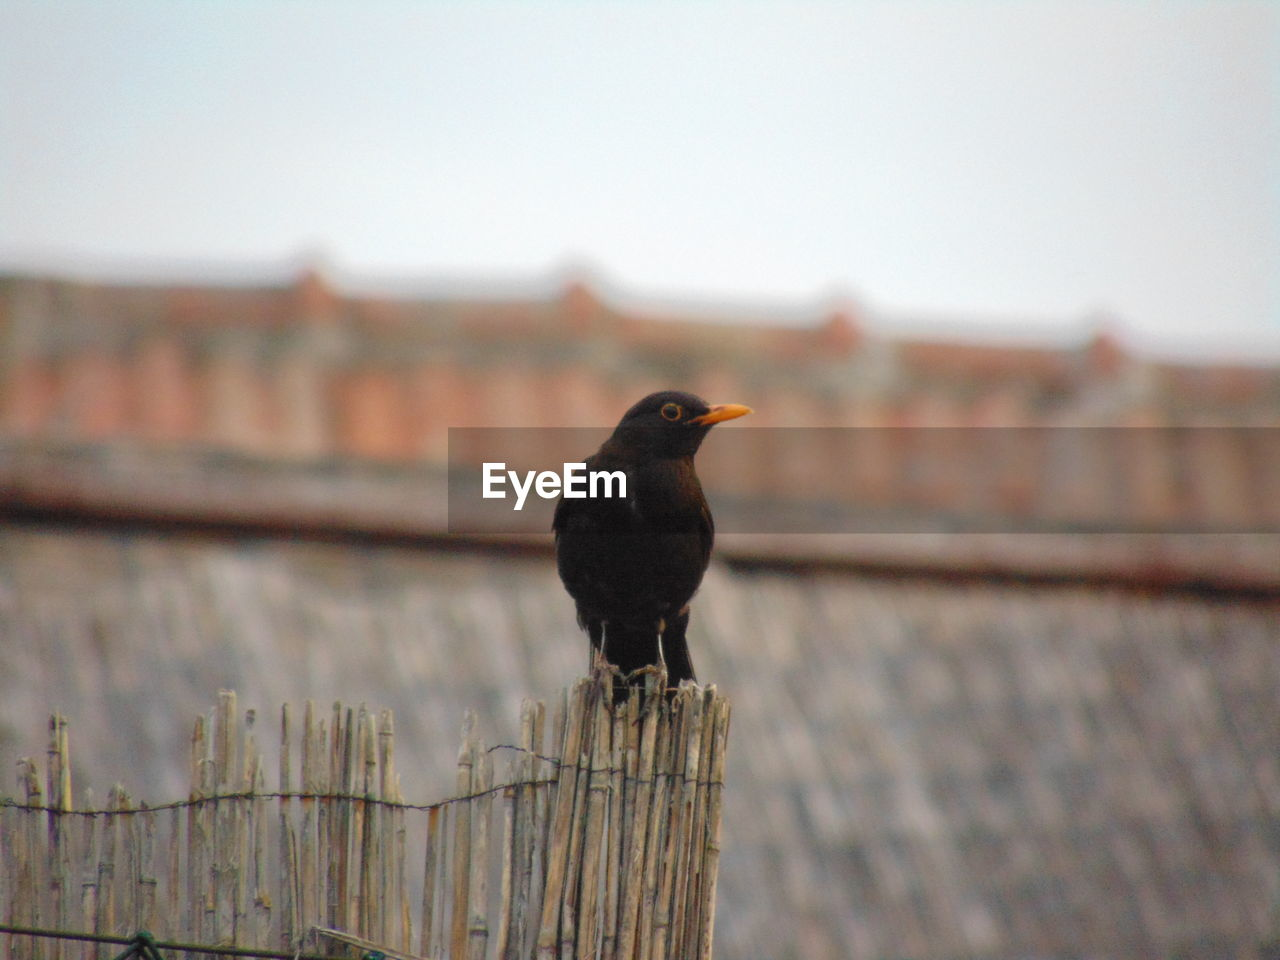 bird, animals in the wild, animal themes, vertebrate, animal wildlife, animal, perching, focus on foreground, one animal, day, architecture, outdoors, nature, sky, no people, close-up, built structure, black color, wood - material, railing, blackbird